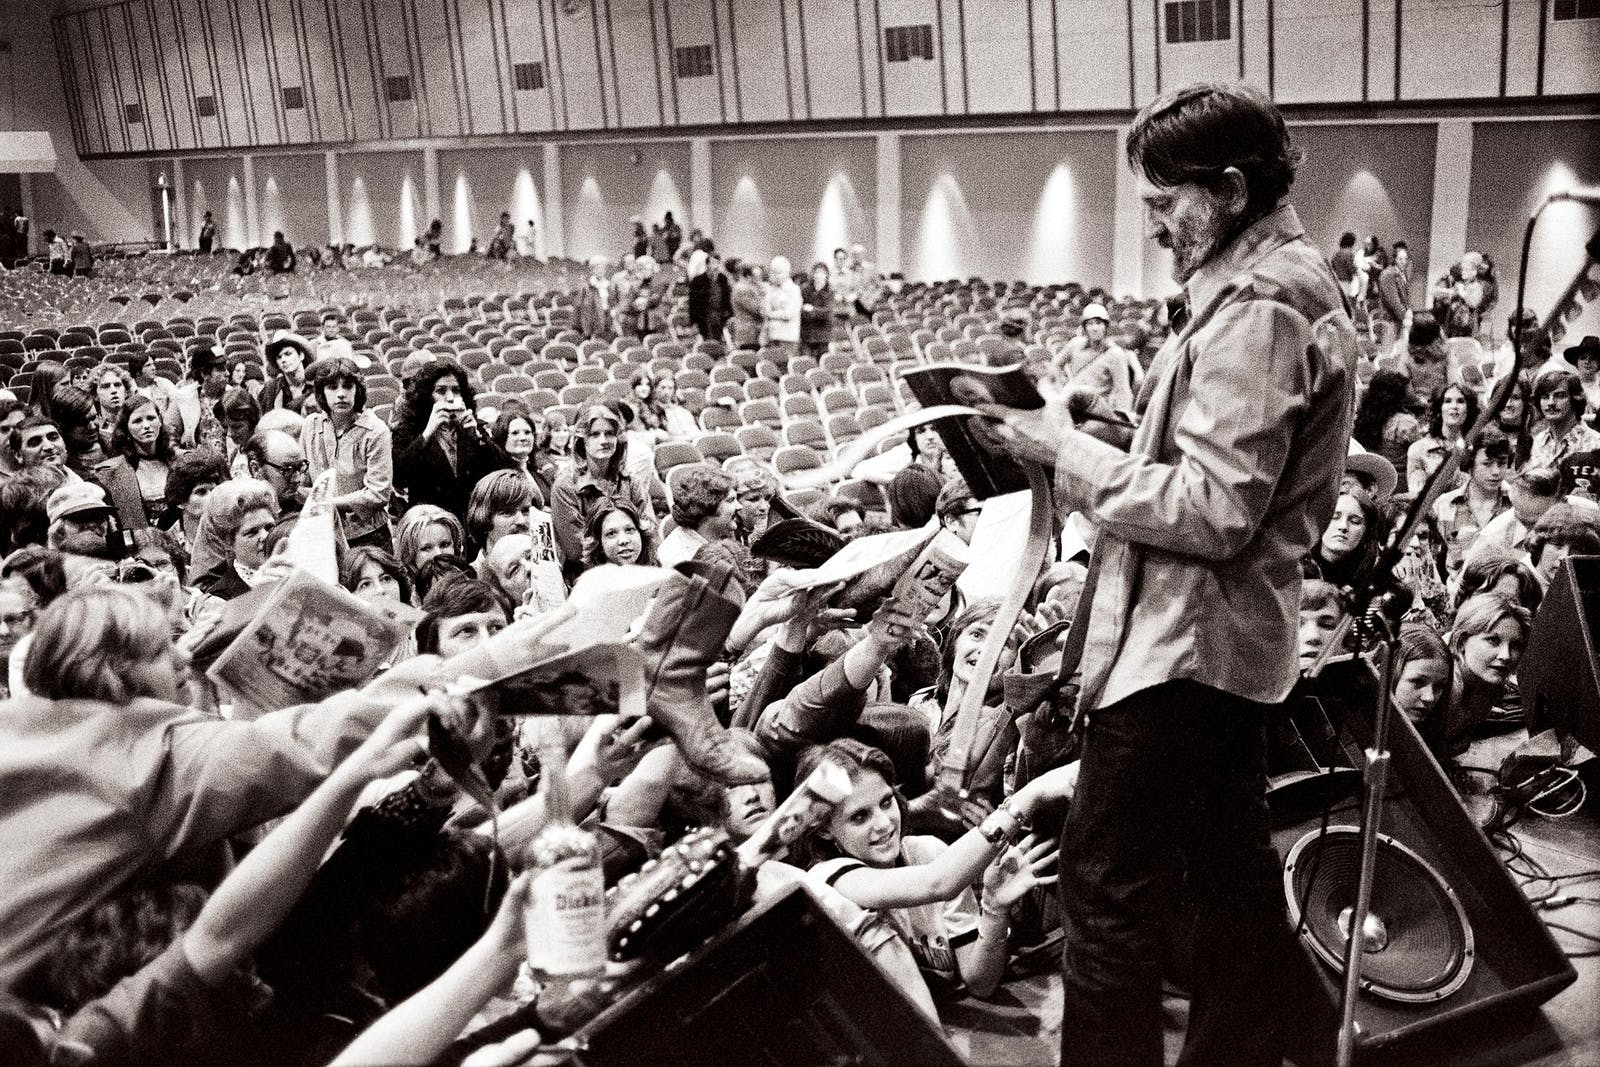 Willie signing autographs after a show in Waco in February 1977.